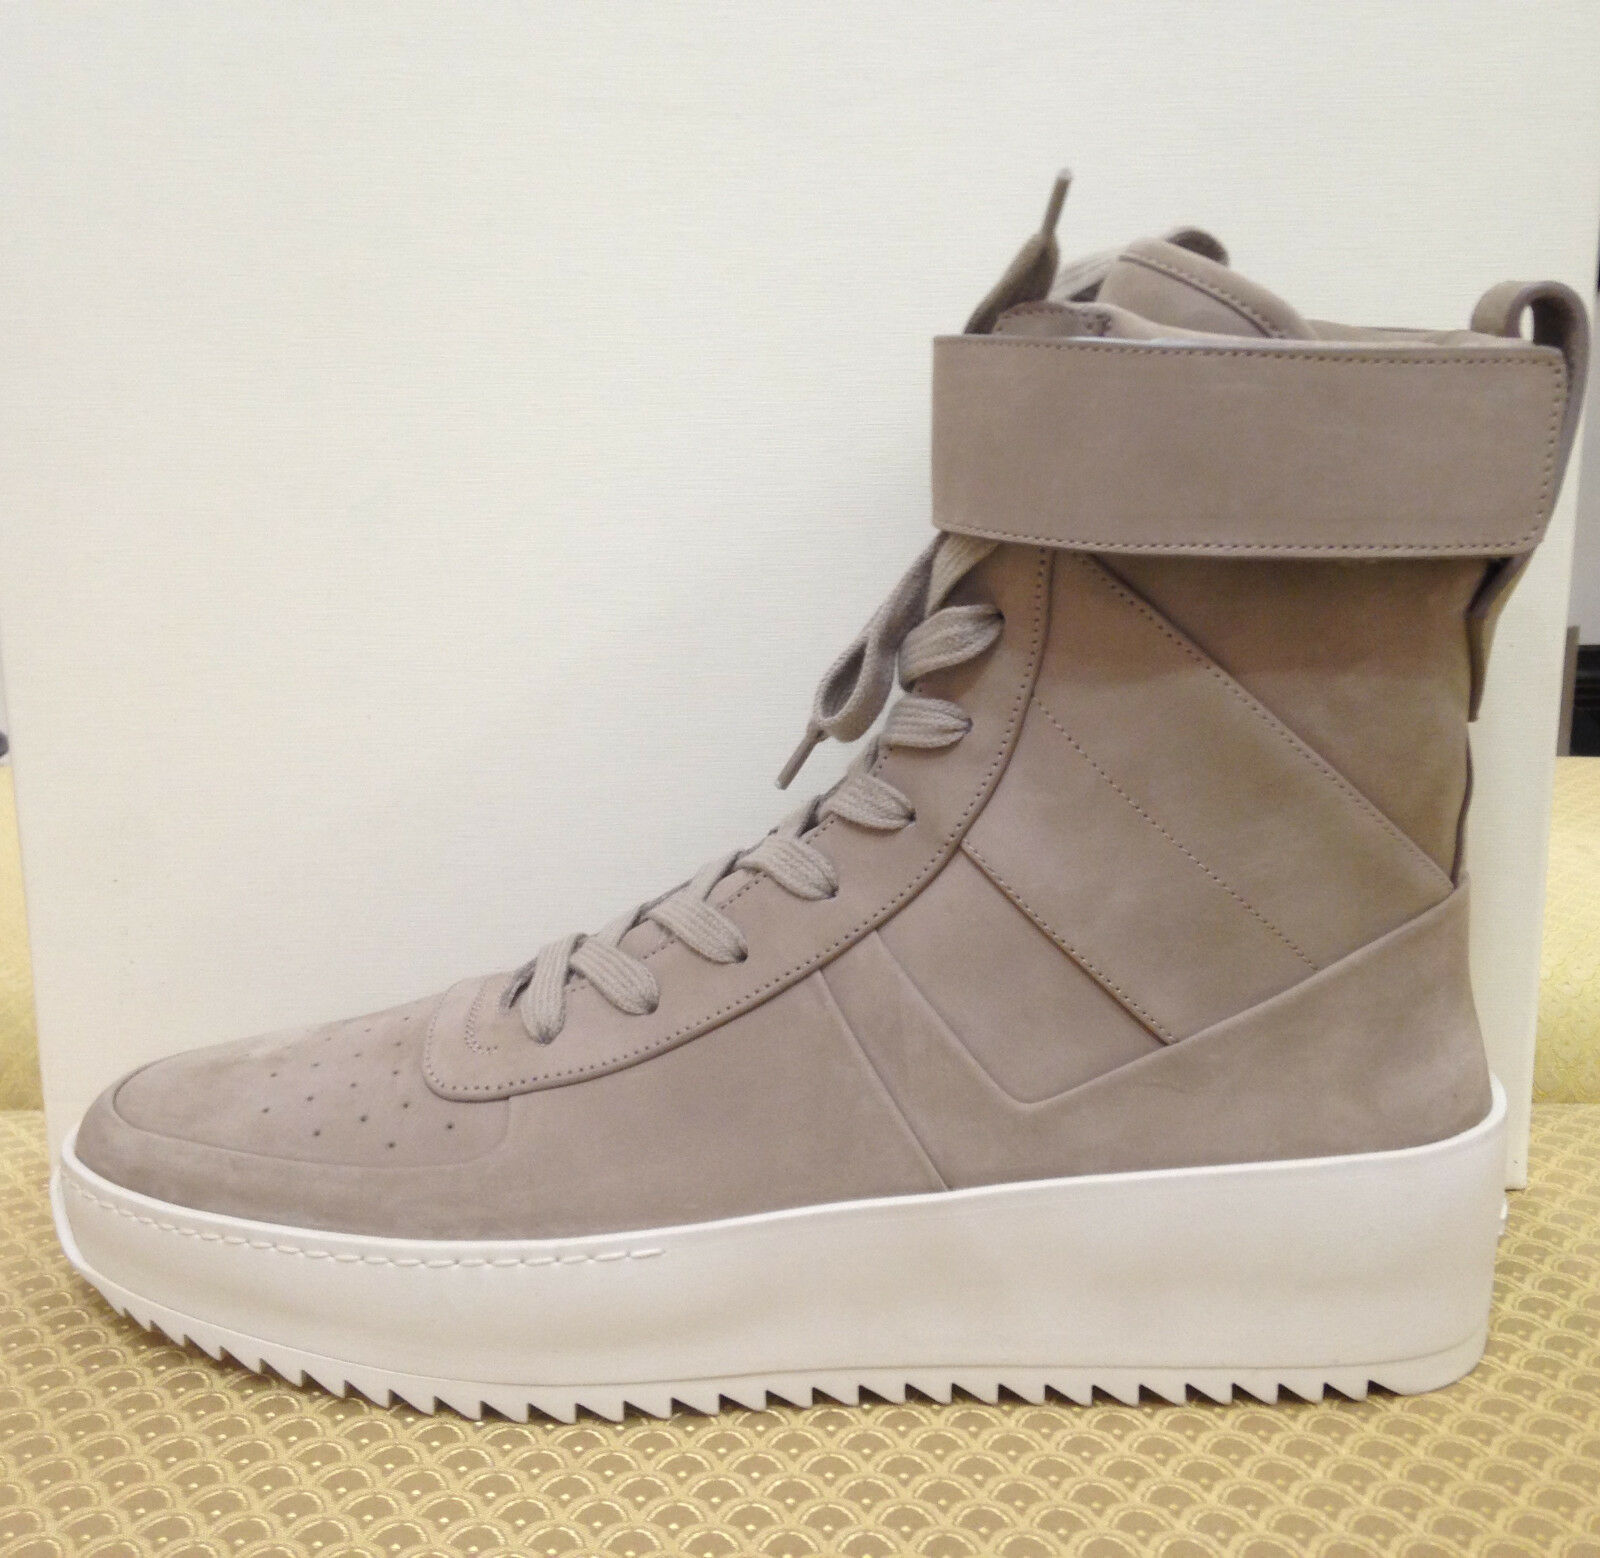 AUTHENTIC FEAR OF GOD MILITARY GREY NUBUCK SNEAKERS YEEZY SUPREME